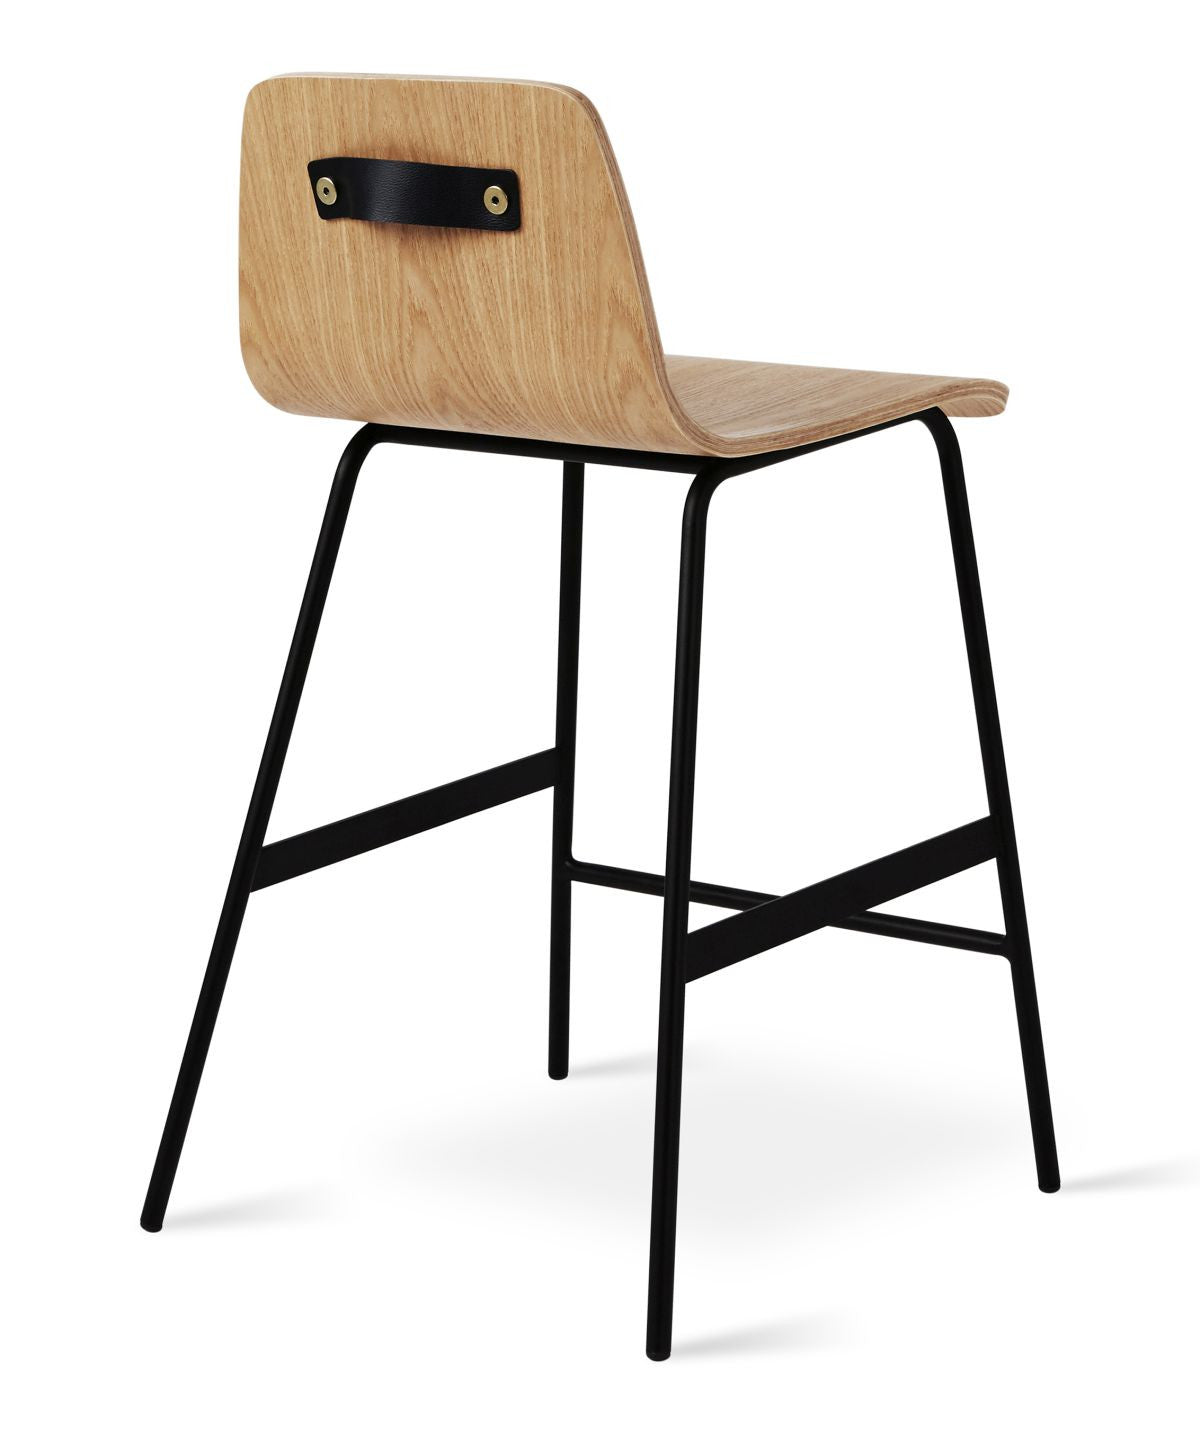 Lecture Stool In Natural Ash Design By Gus Modern Burke